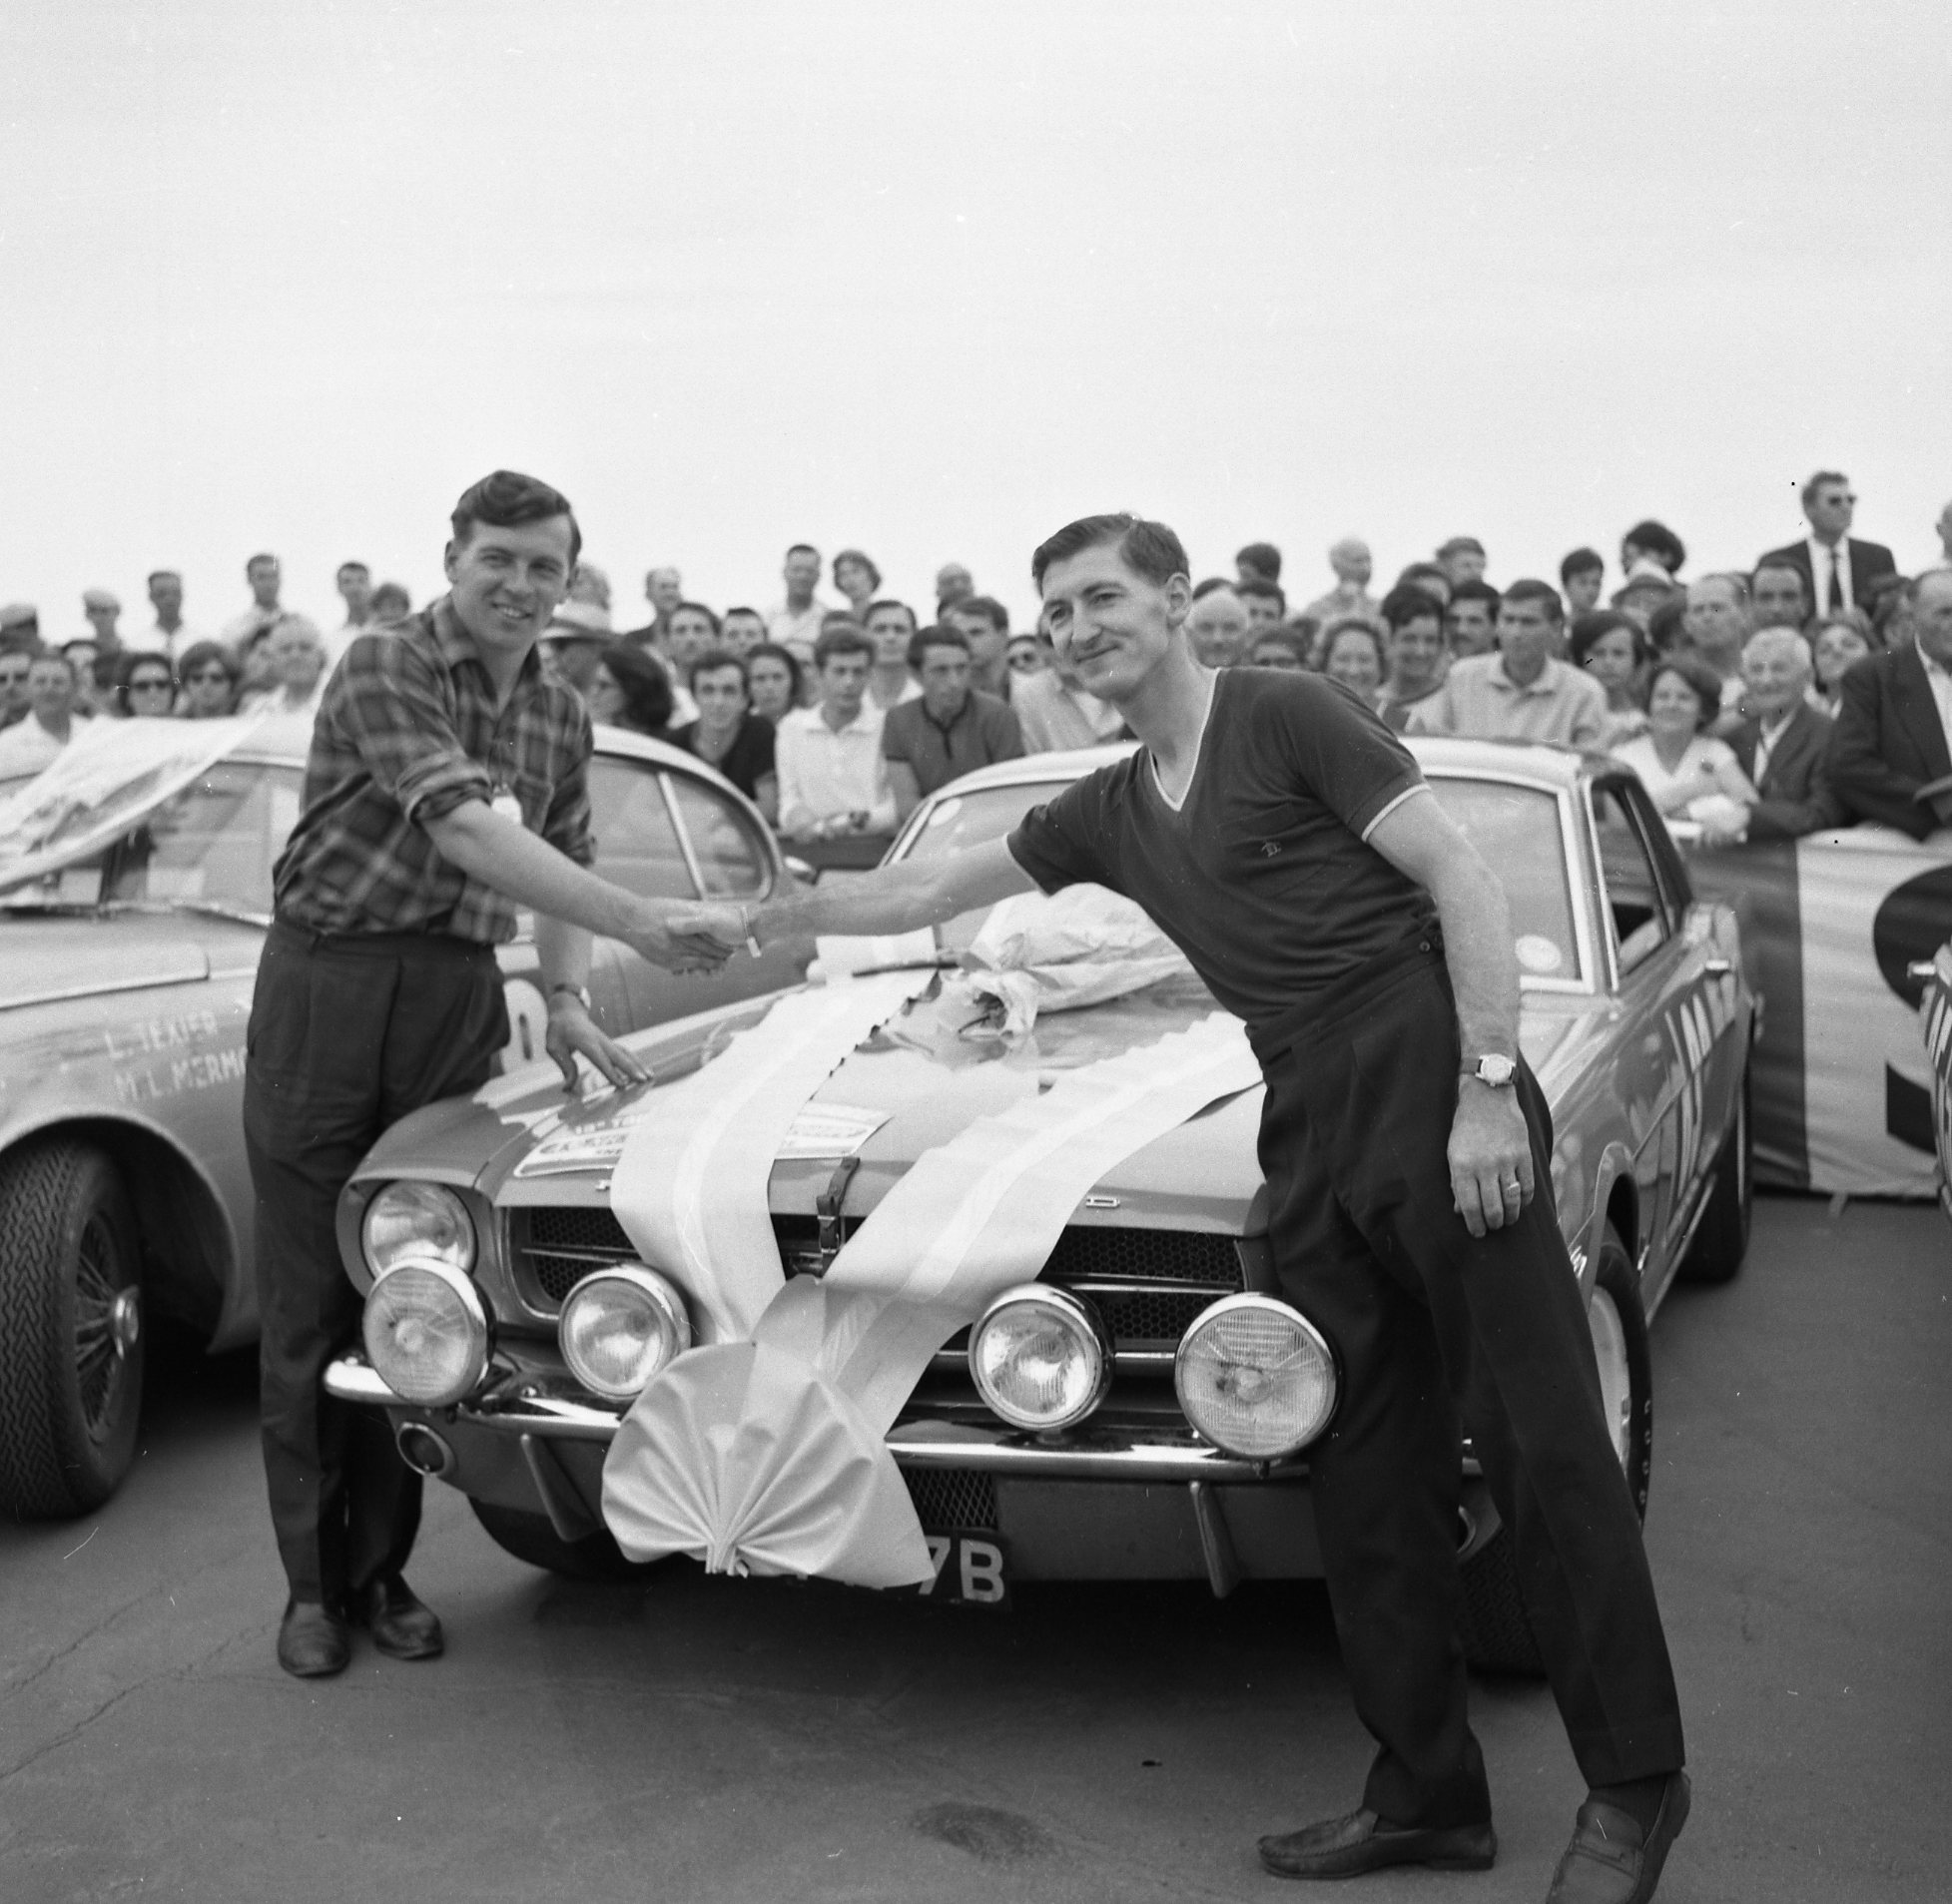 British drivers Andrew Cowan (left) and Peter Procter with the 1965 Mustang that won the Touring Class in the 1964 Tour de France Automobile.